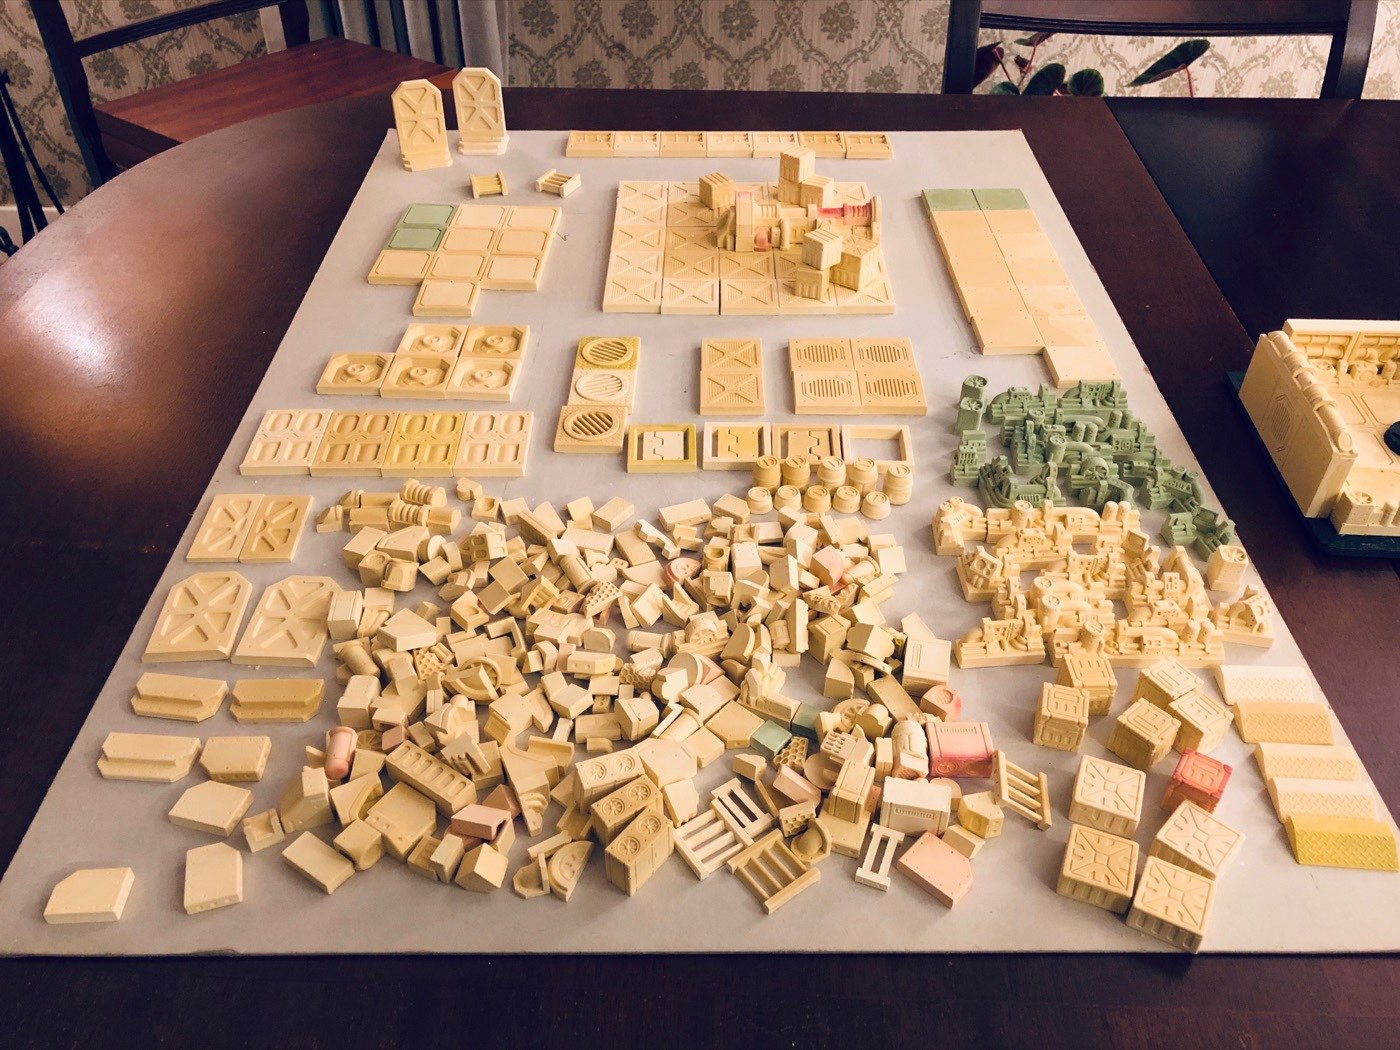 A table full of pieces